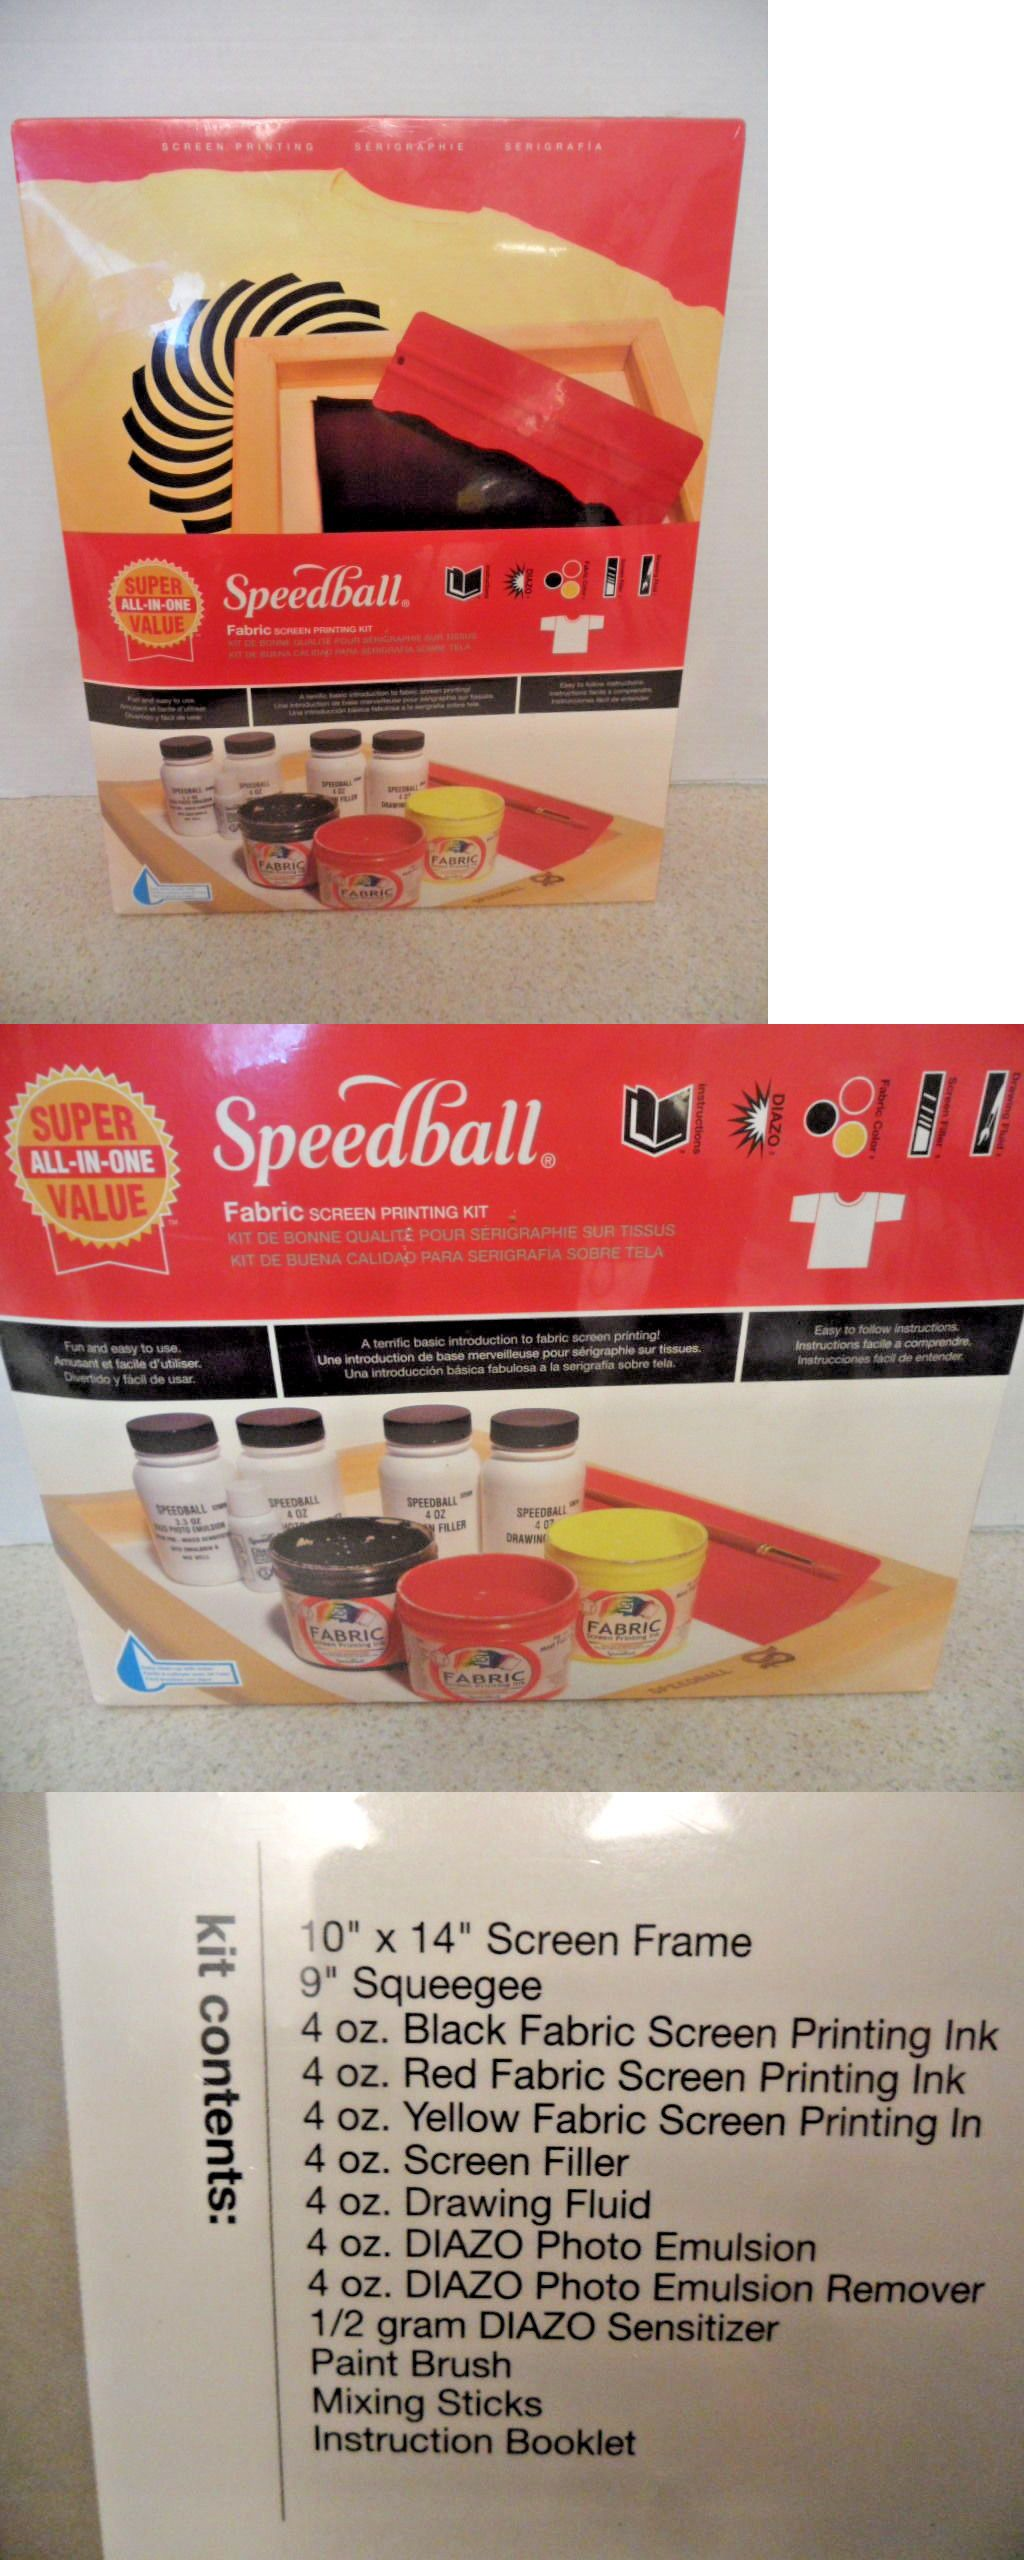 SPEEDBALL ART PRODUCTS 4526 SUPER VALUE FABRIC SCREEN PRINTING KIT